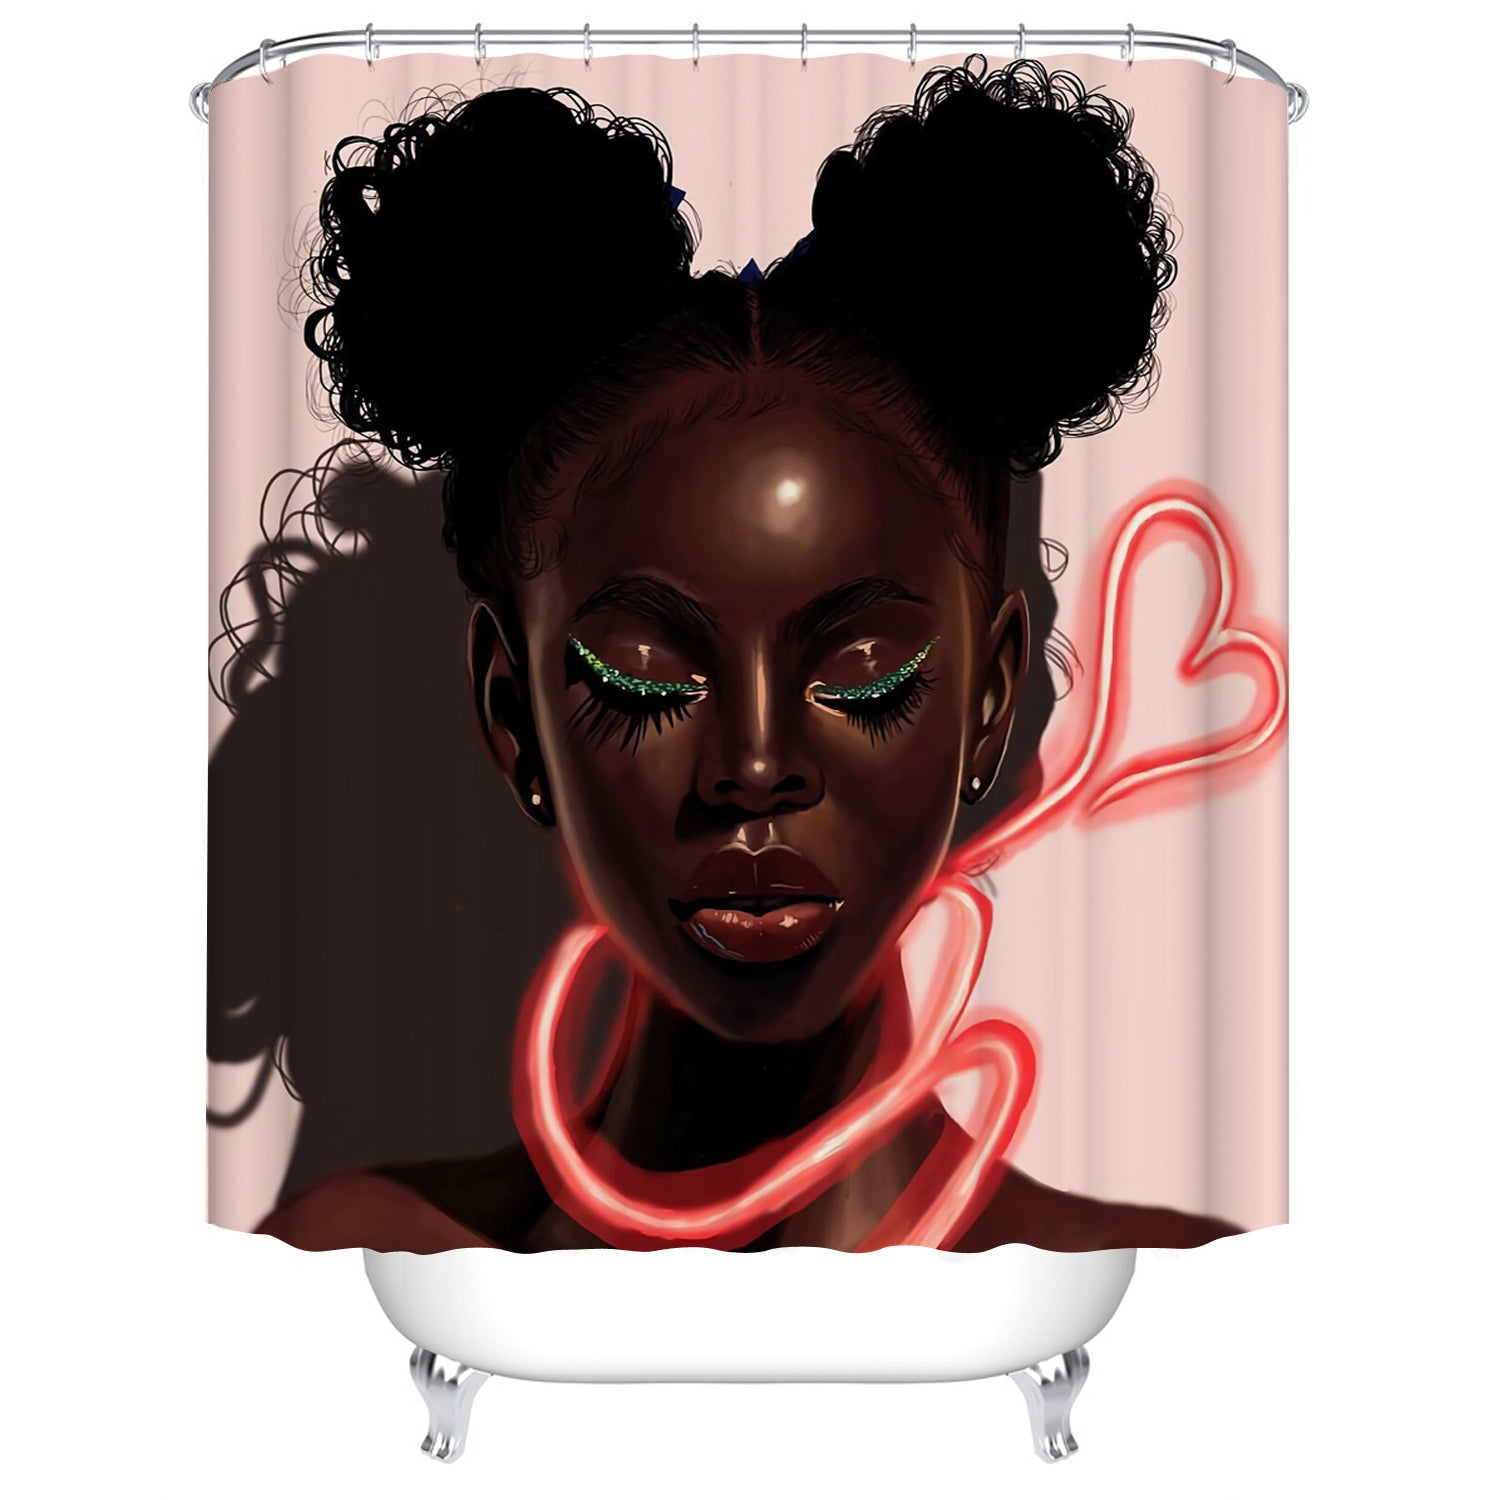 Pink Backdrop Black Art Melanin Girl with Love Shape Neon Light Afro American Shower Curtains